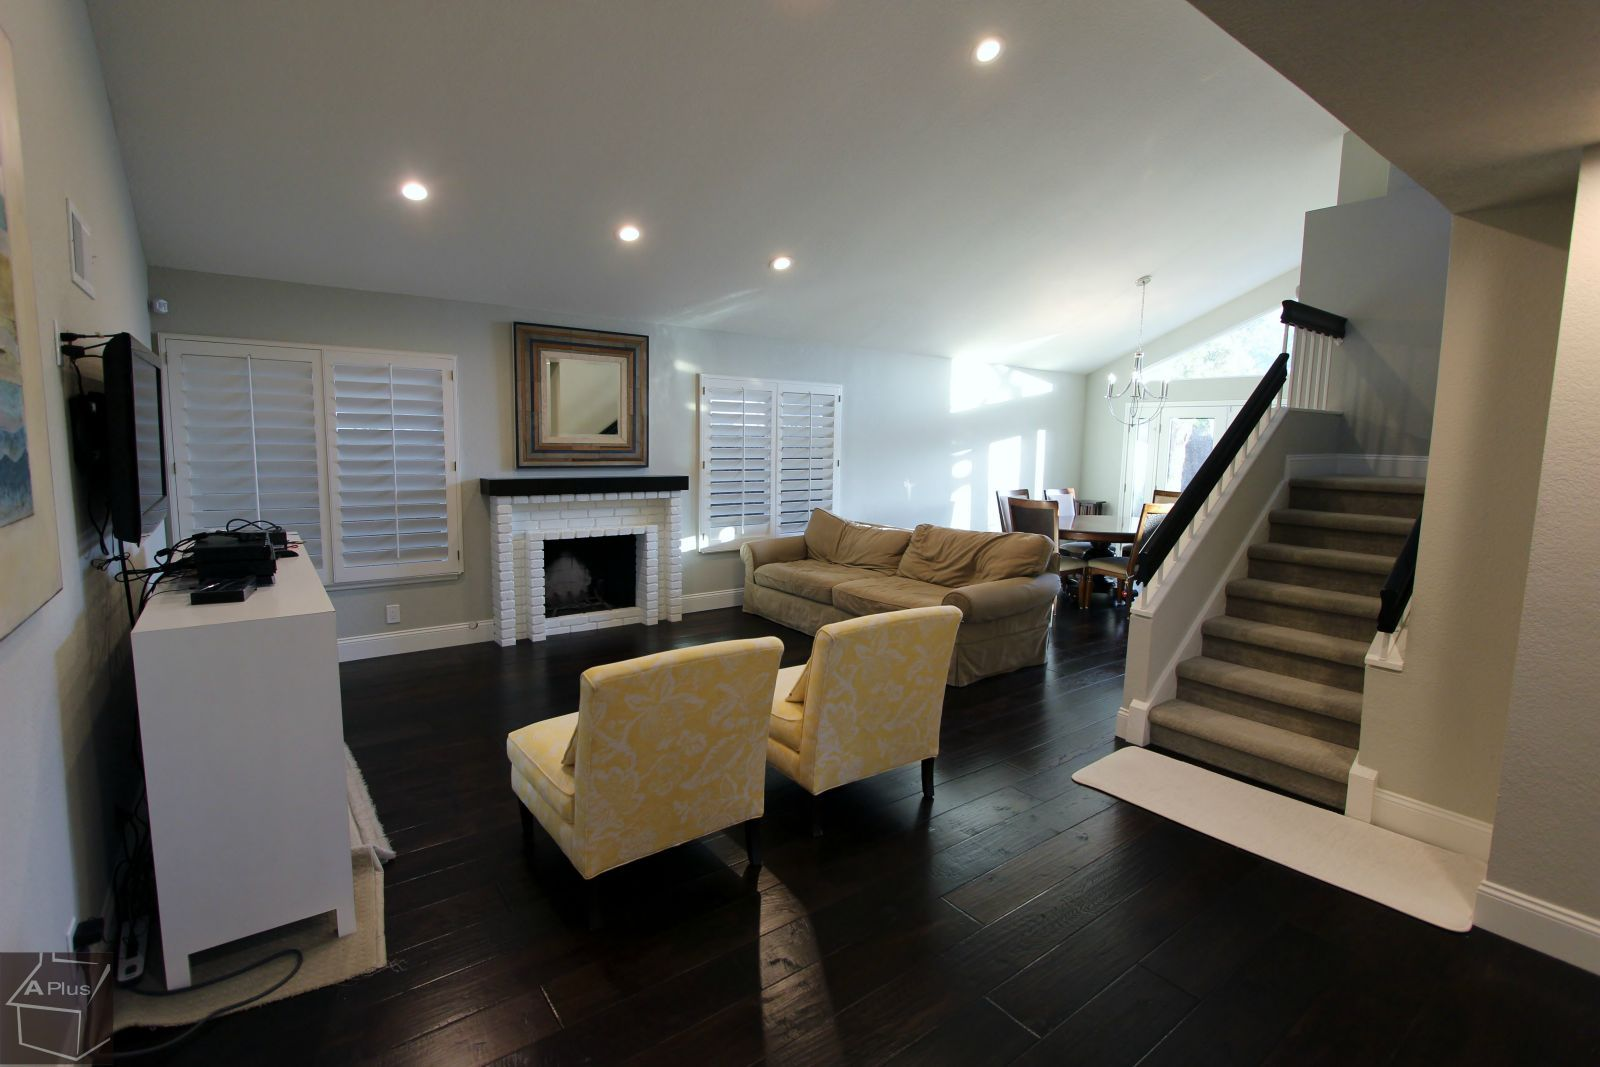 Offers Leading Services For Kitchen Remodeling Orange County, Bathroom Home  Remodeling And Interior Designers Custom Kitchen Cabinets General  Contractor ...